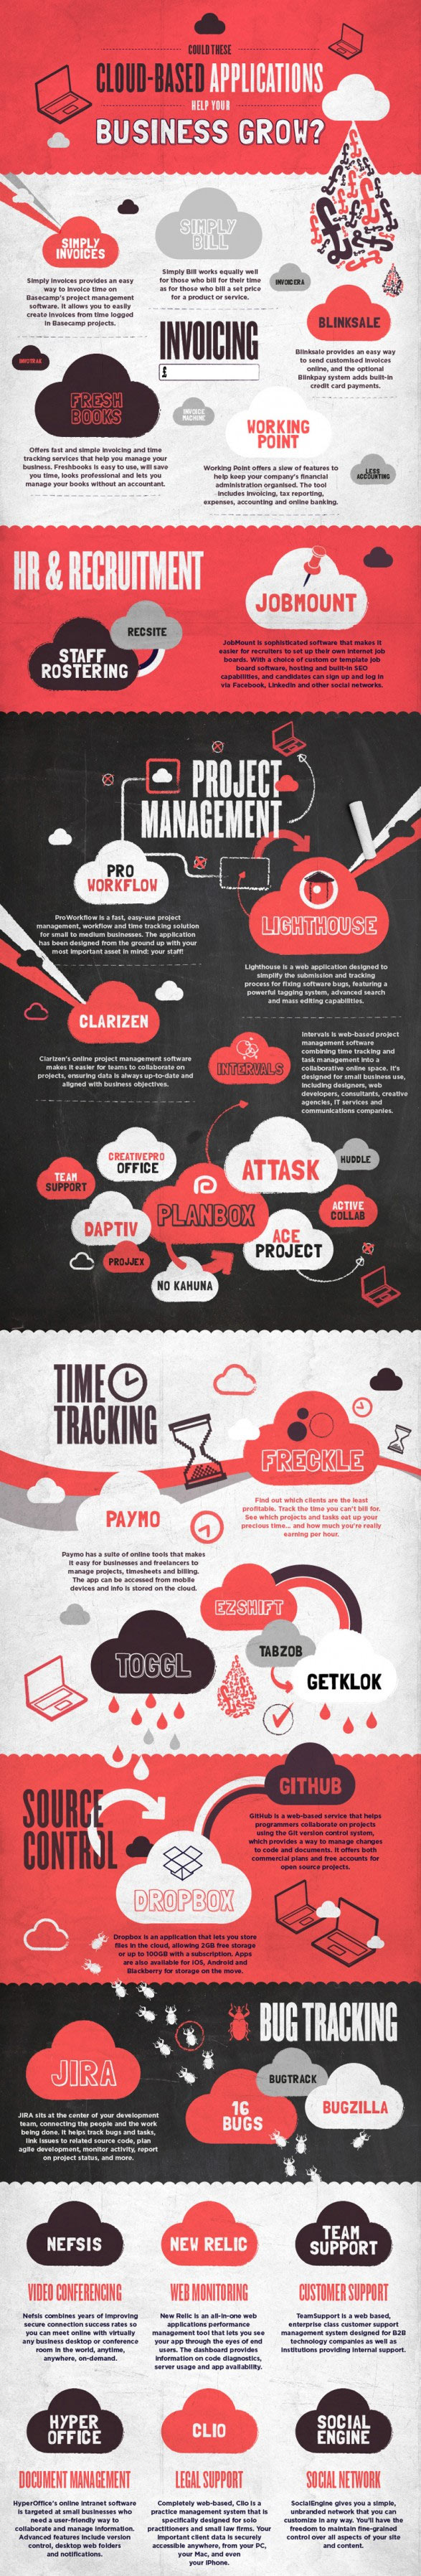 cloud applications infographic